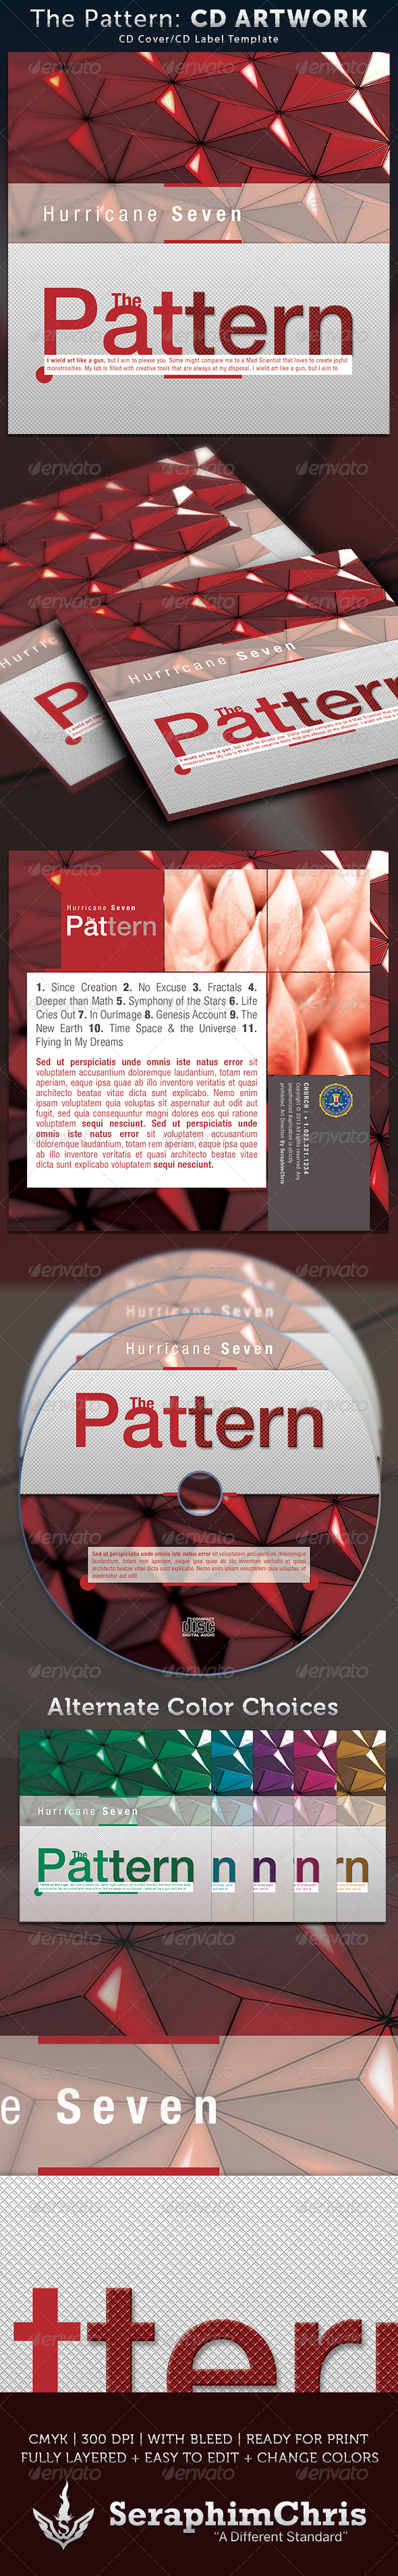 The Pattern CD Cover Artwork Template